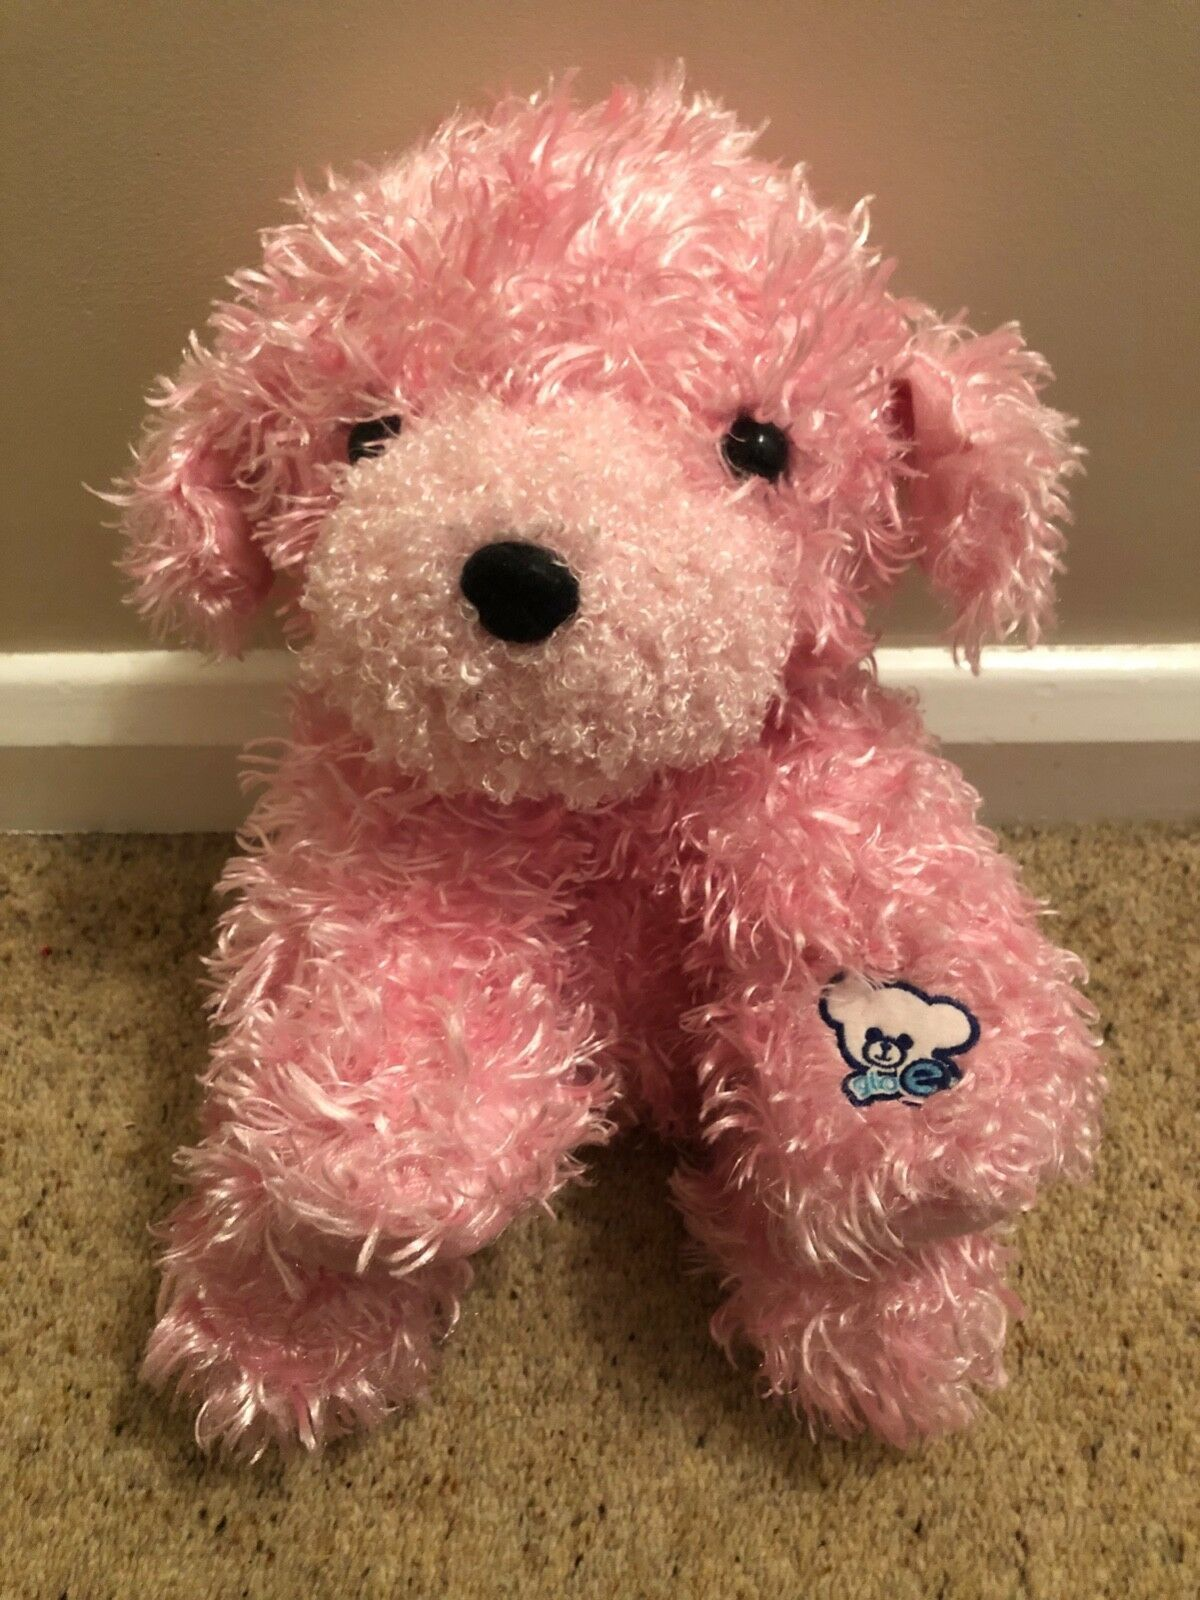 Details About Glo E Pink Soft Teddy Dog Light Glow Up Friend U K